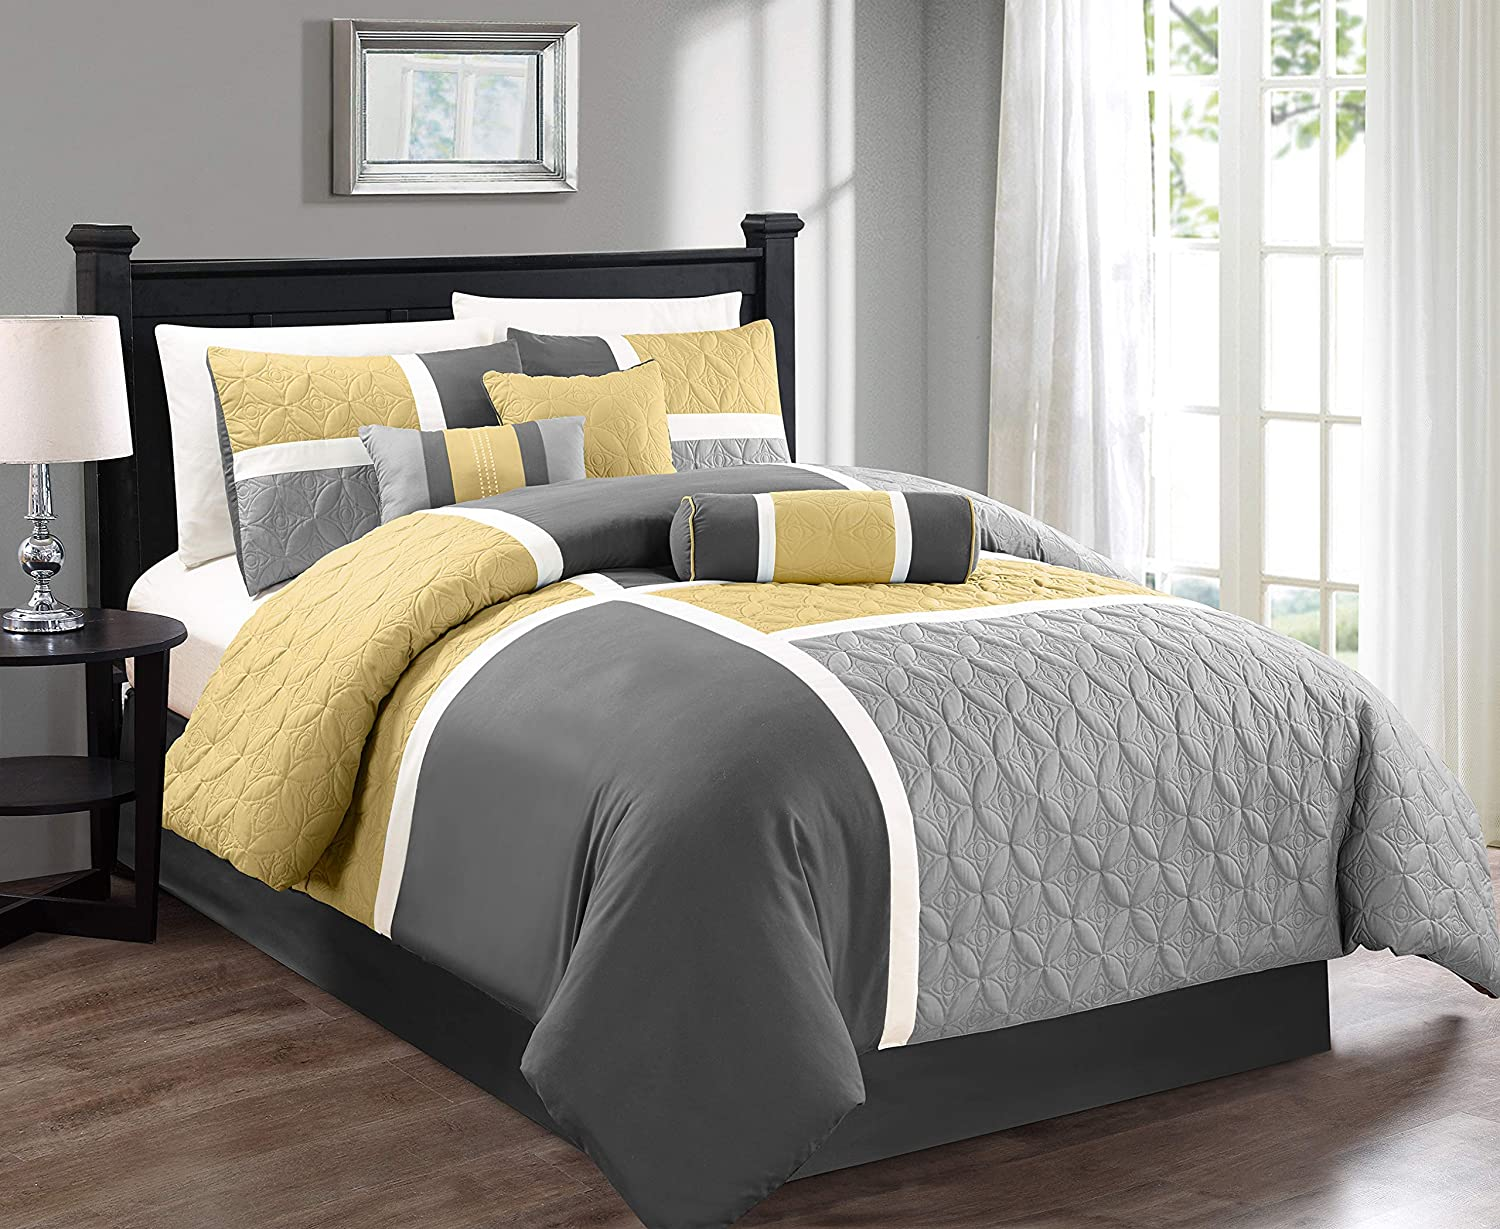 Chezmoi Collection 7-Piece Quilted Patchwork Comforter Set, Yellow/Gray, California King